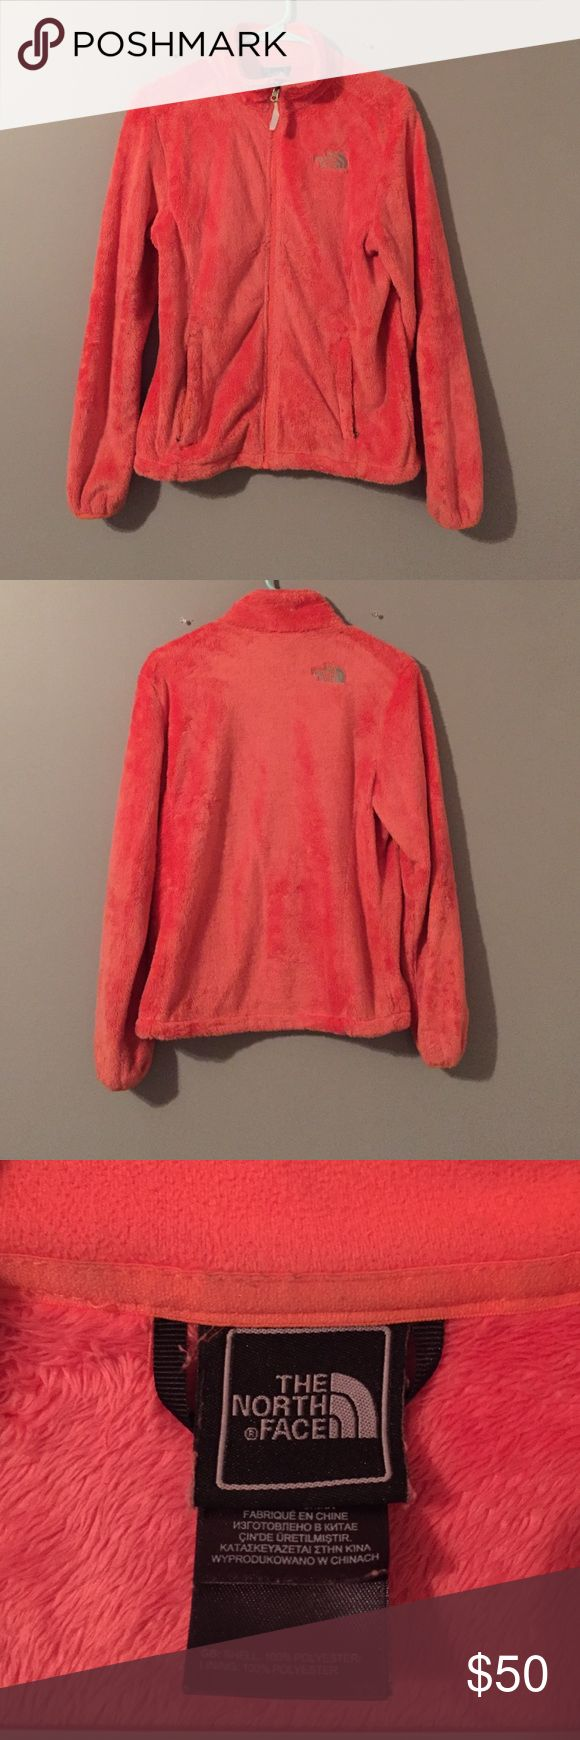 Women's Orange North Face Fleece Jacket North Face, women's fleece jacket. Orange colored, fleece inside and out. Zips up completely. Pockets zip. Size Small. Lightly worn, in great condition! North Face Jackets & Coats